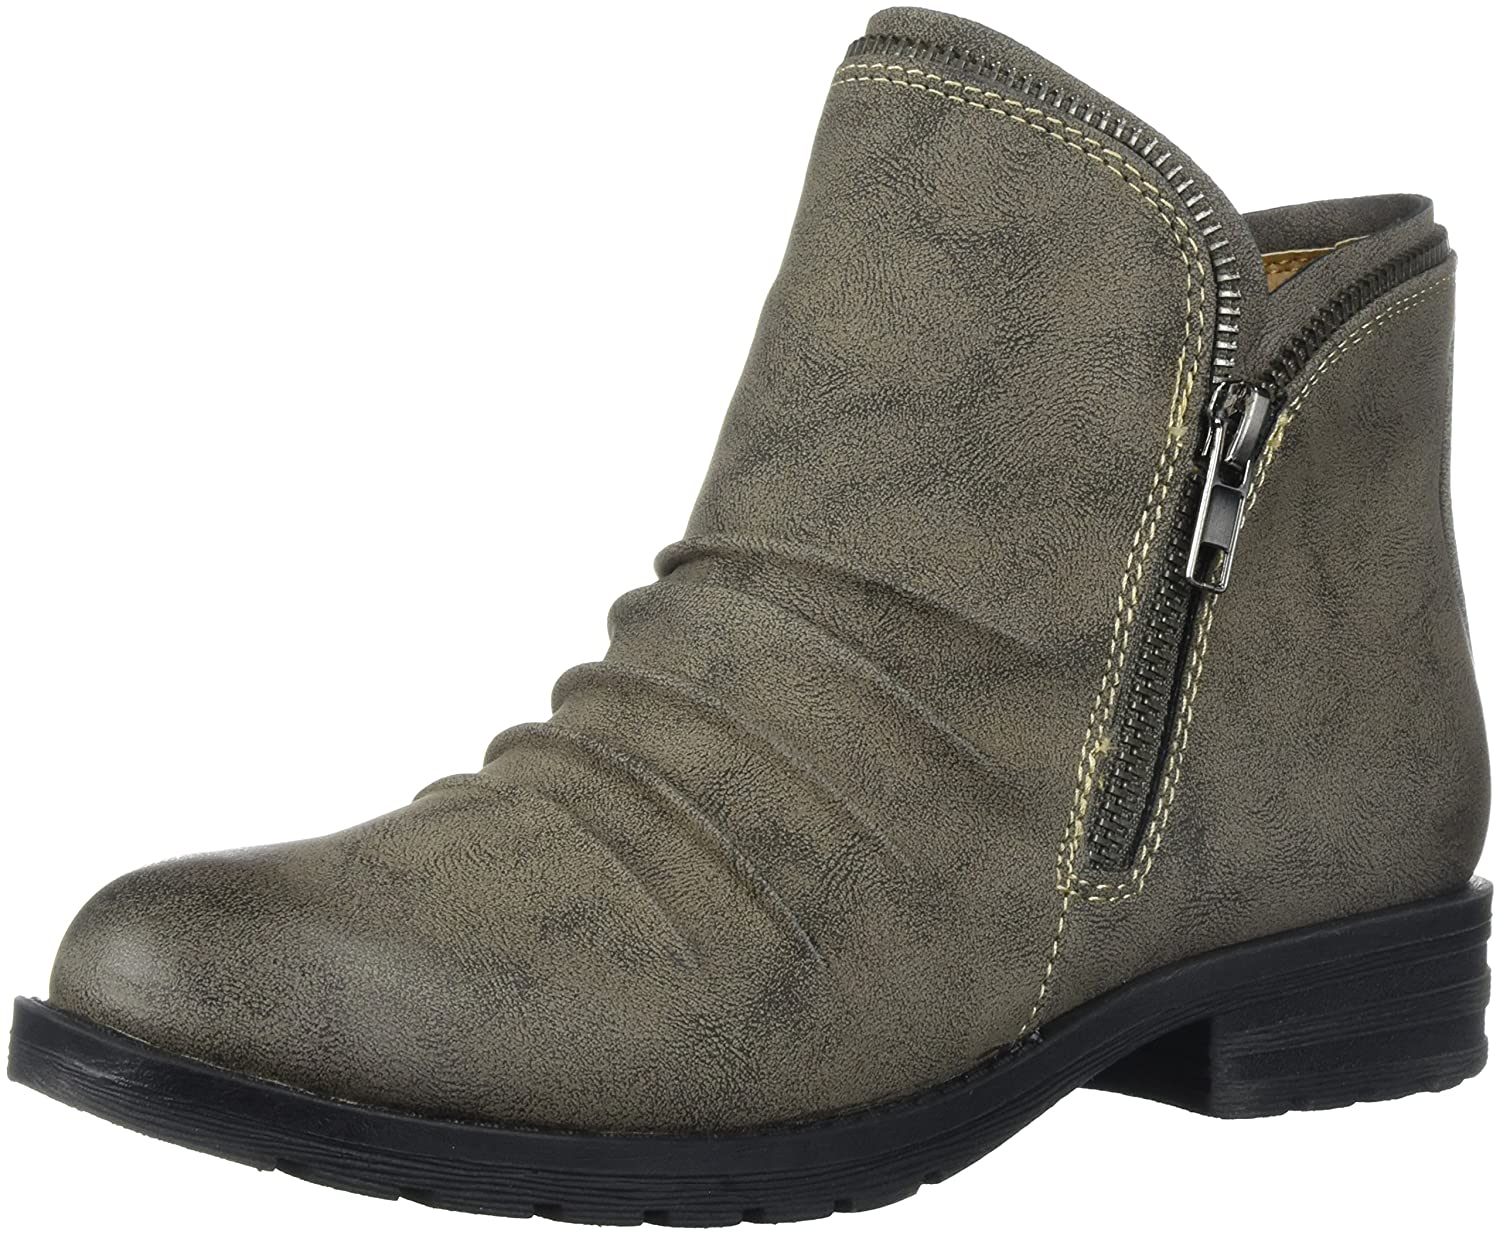 NATURAL SOUL Women's Brisha Ankle Boot B076DW3FW2 8.5 B(M) US|Grey